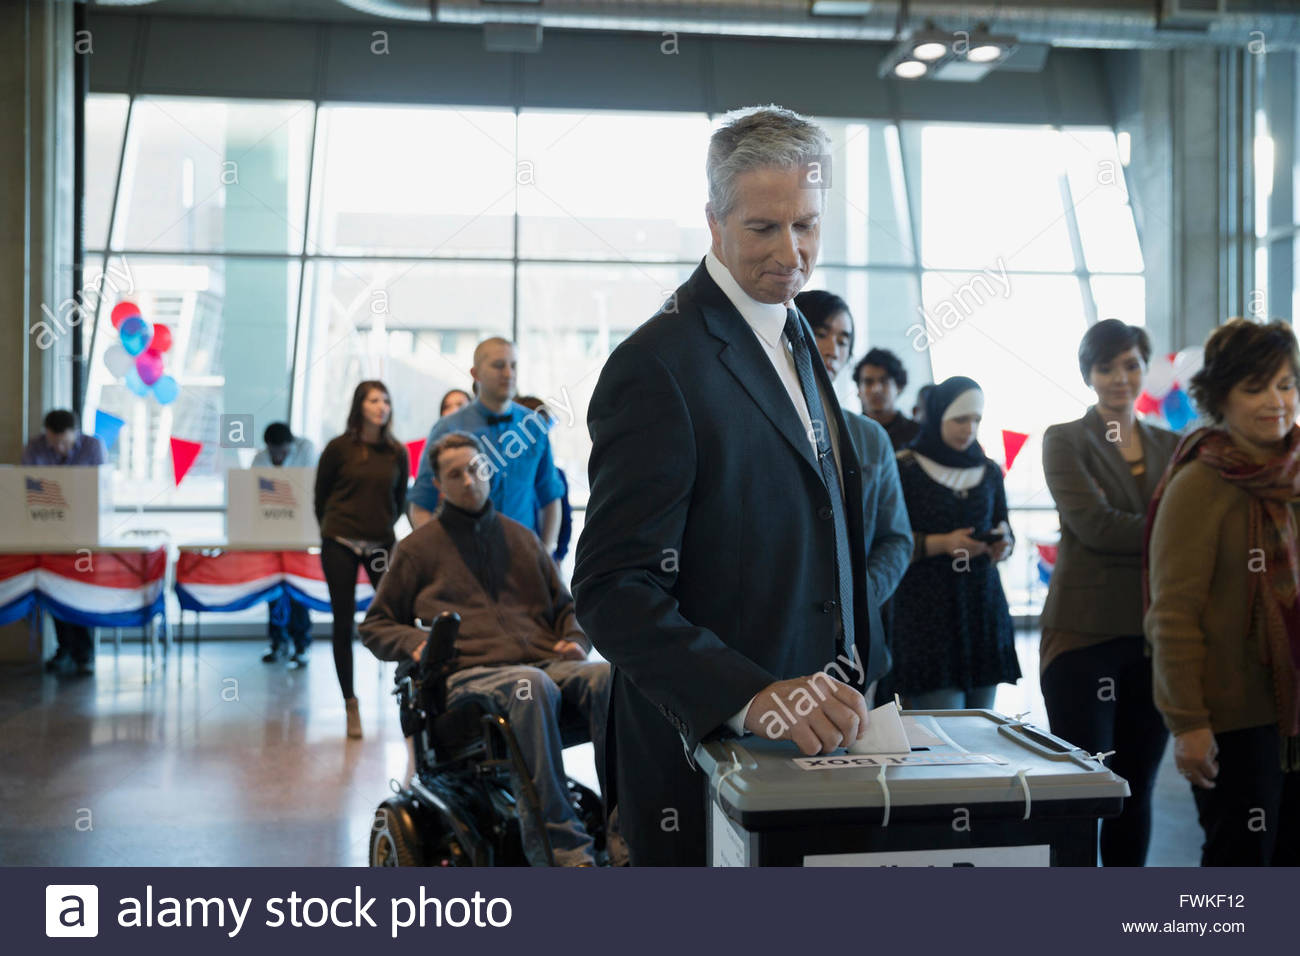 Voter placing ballot in ballot box polling place - Stock Image